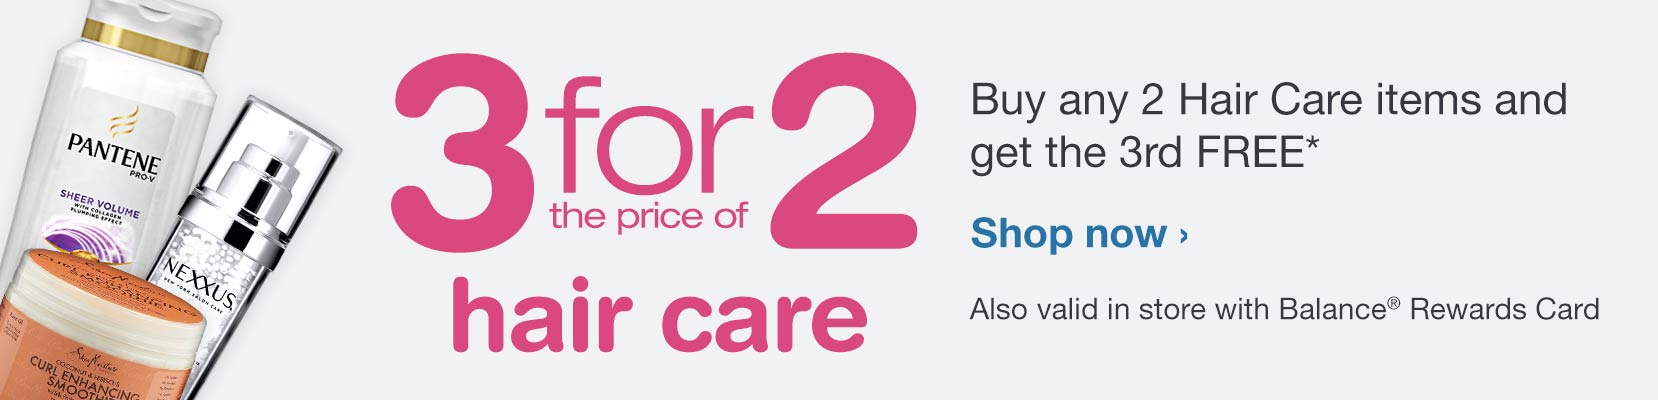 3 for 2 Hair Care. Also valid in store with Balance(R) Rewards Card. Shop now.